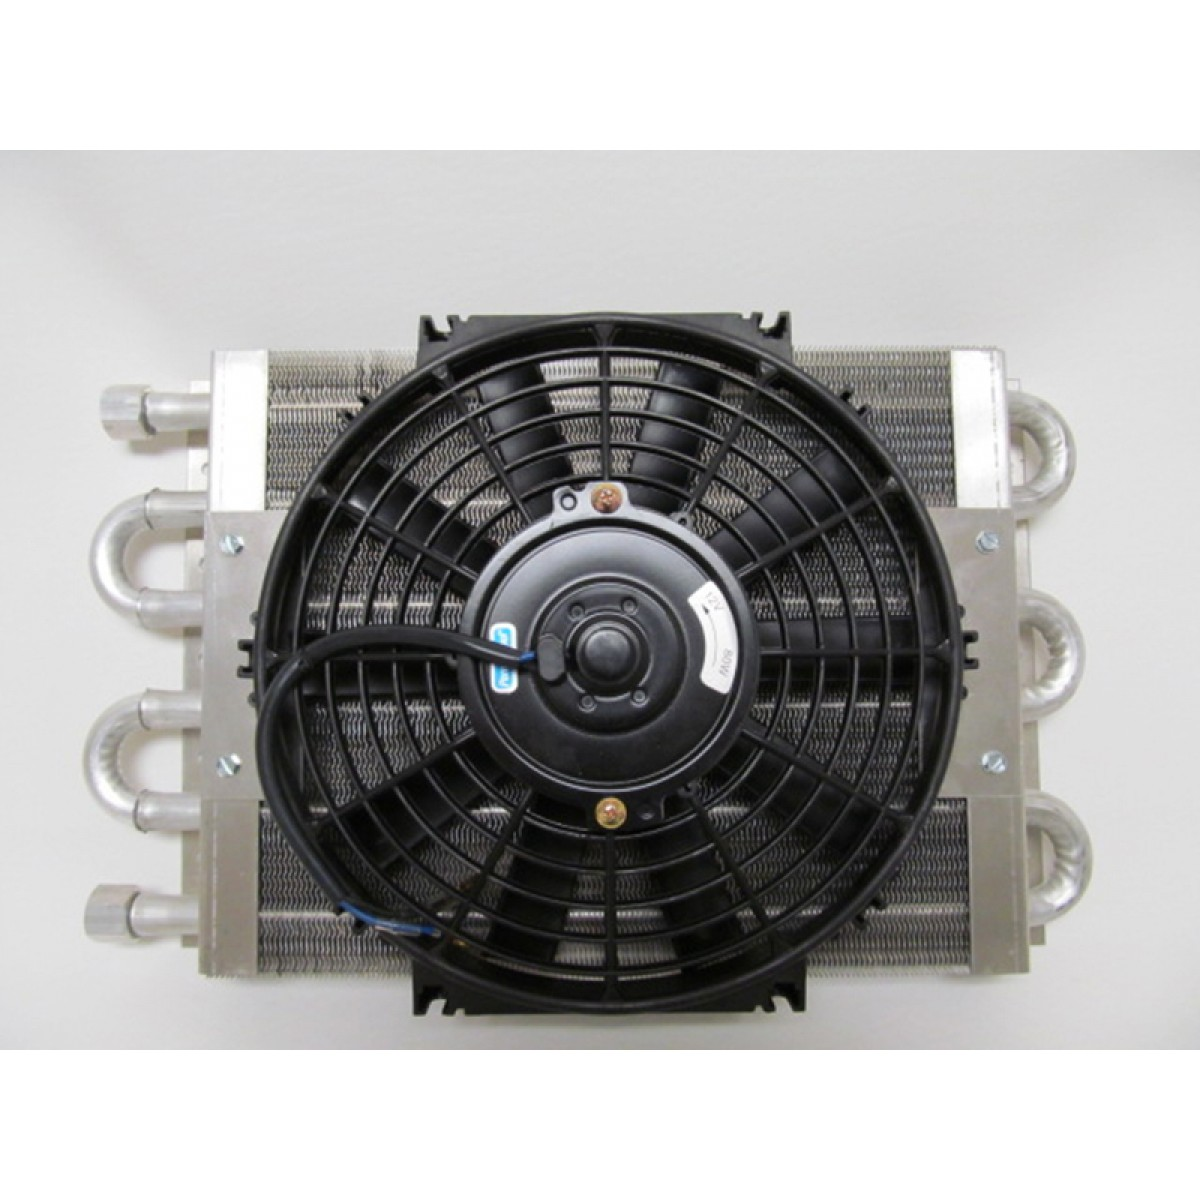 oil cooler fan assembly maxi cool high performance oil cooler 12315 1  #5D616E